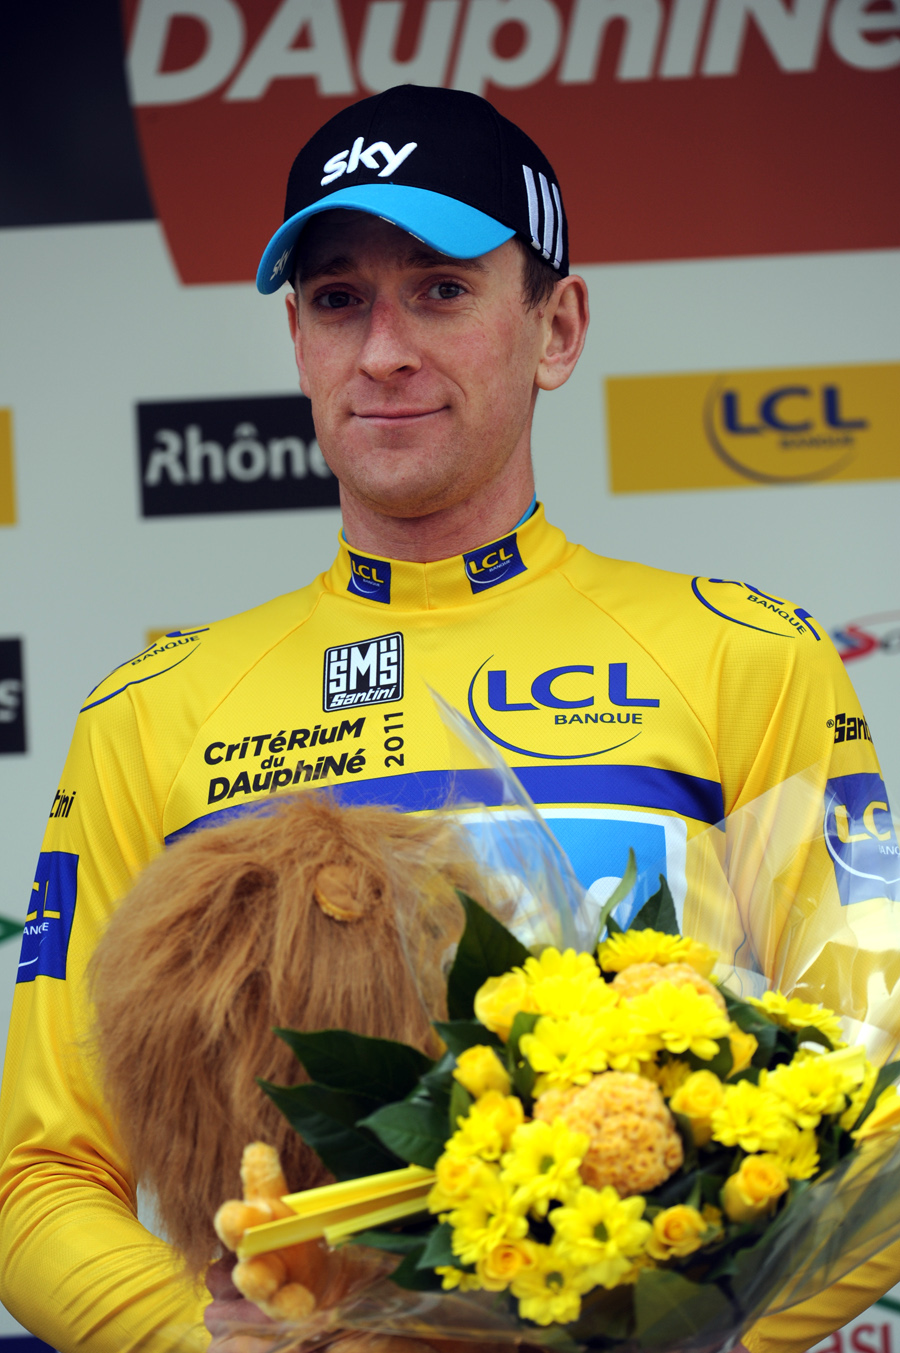 Bradley Wiggins moves into overall lead, Criterium du Dauphine 2011, stage three ITT